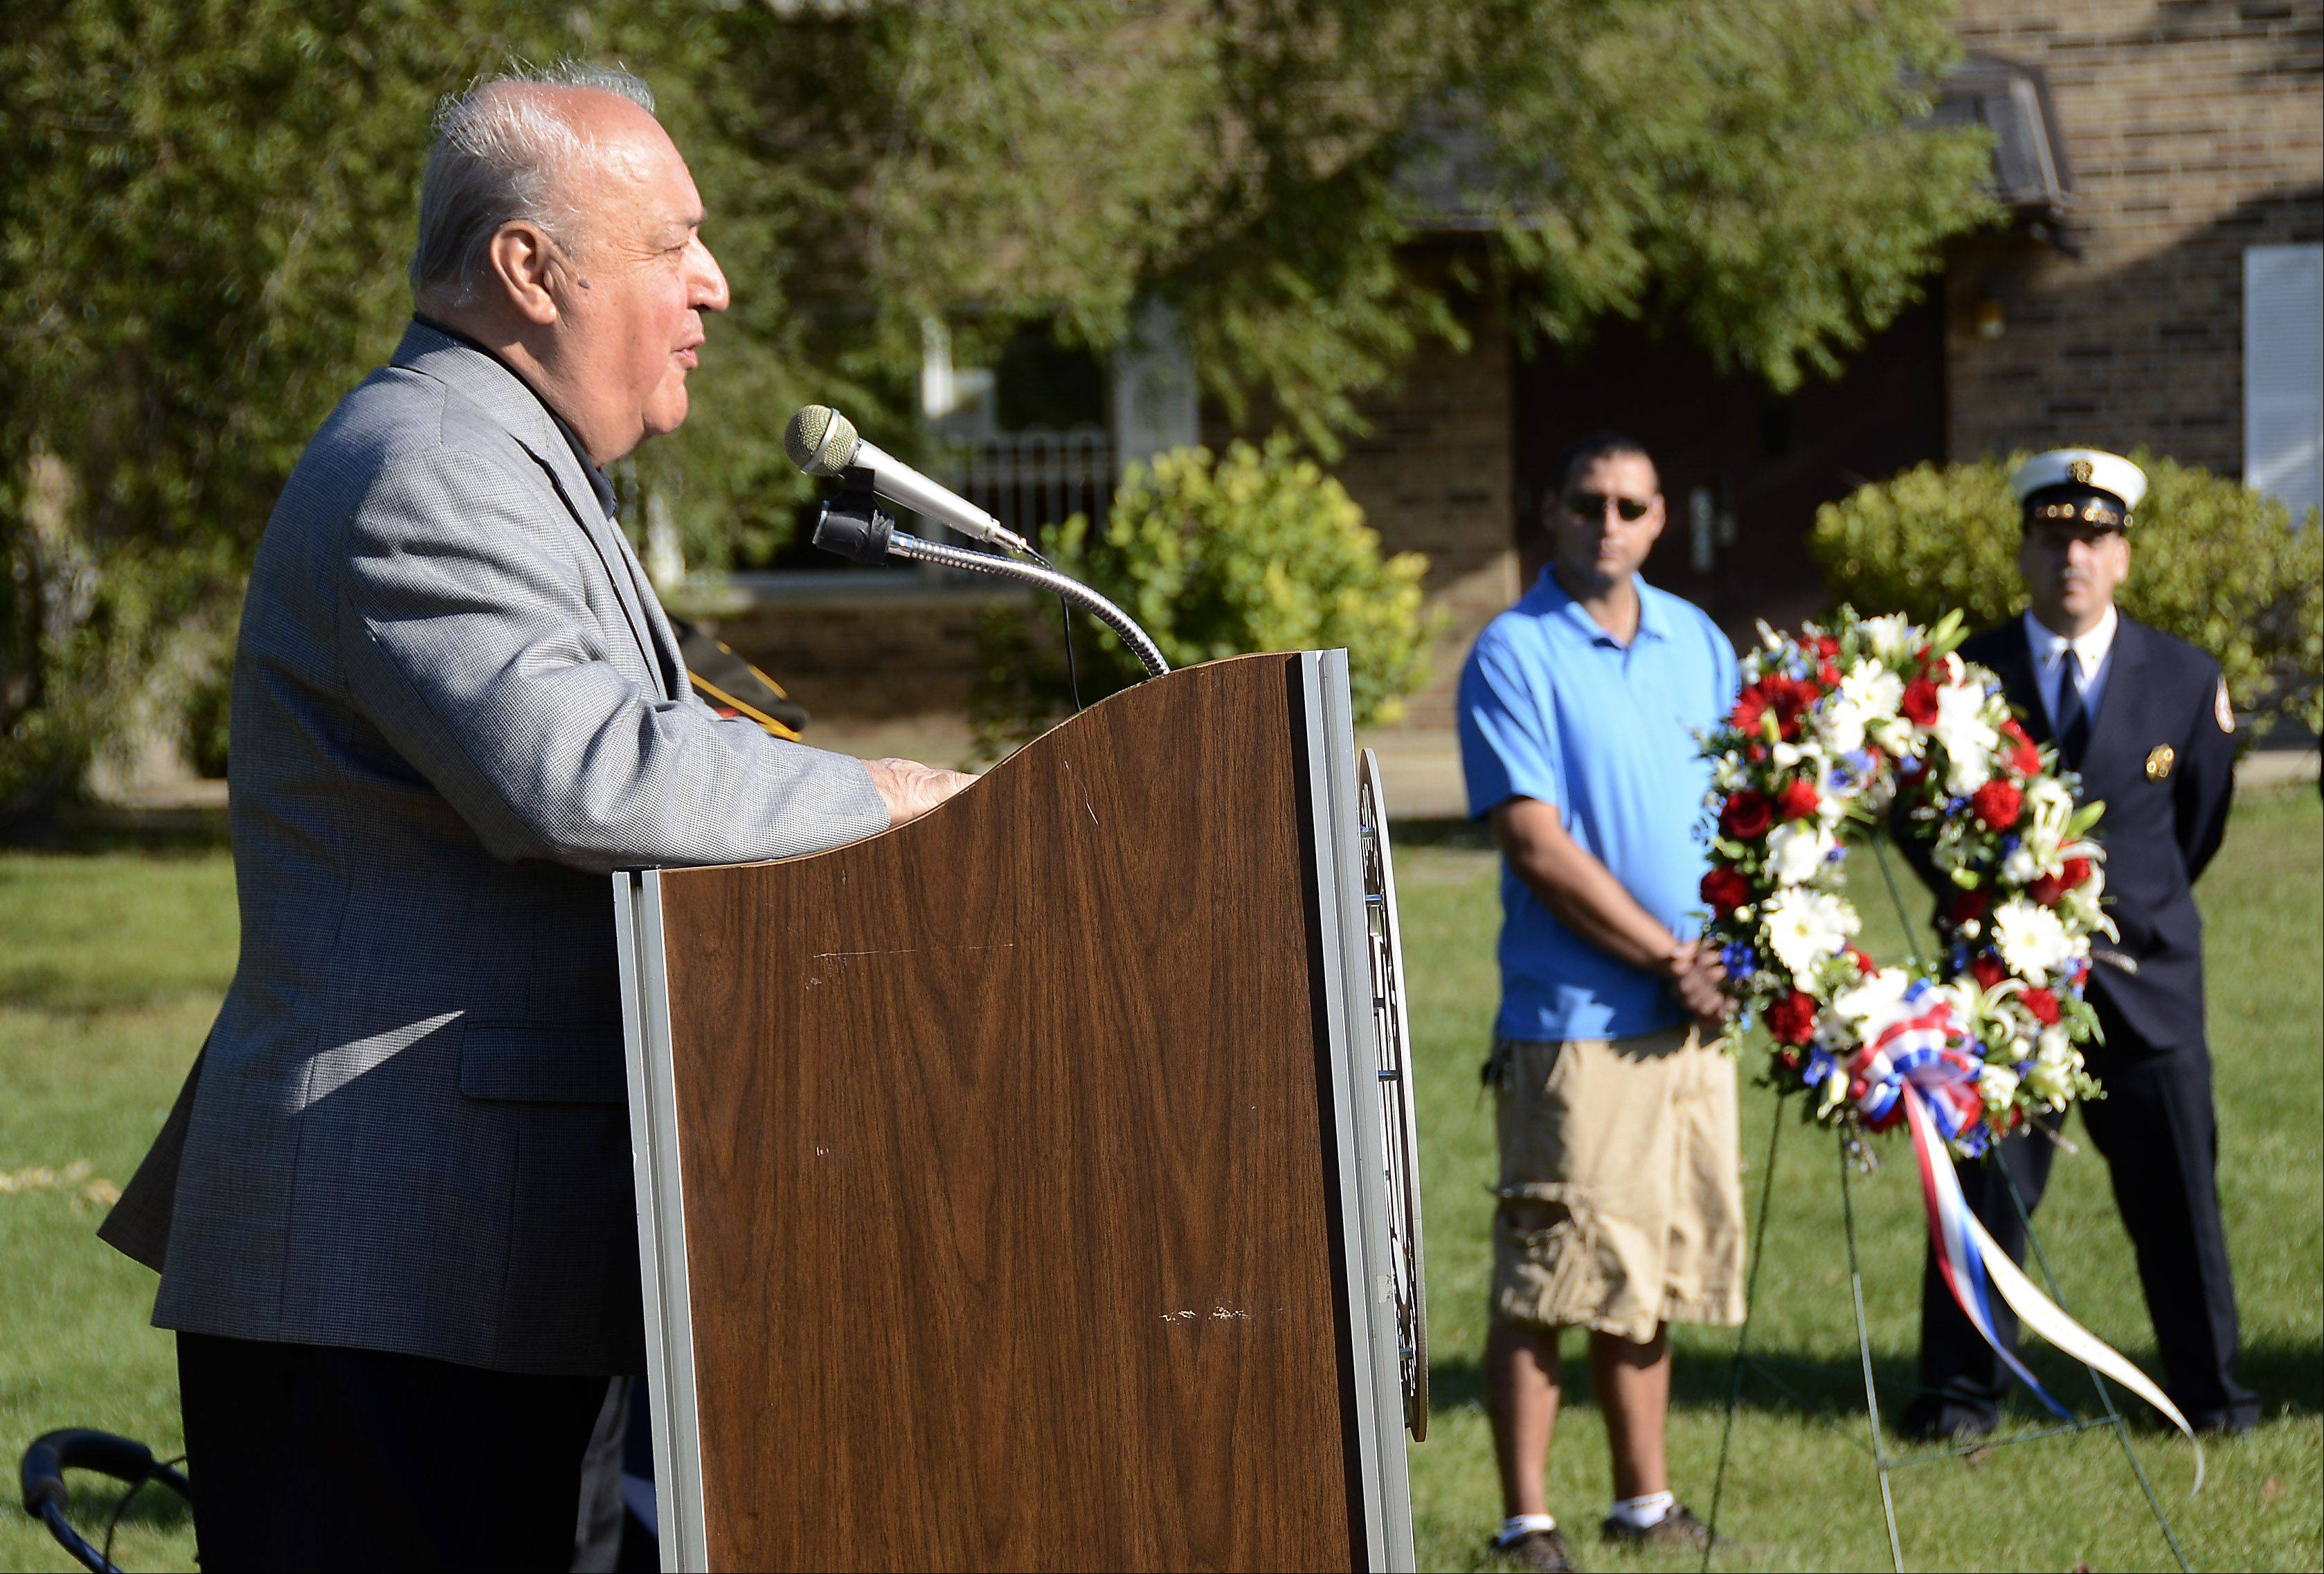 Former Des Plaines Mayor Tony Arredia speaks during a 9/11 Patriot Day ceremony at Maryville Academy in Des Plaines.